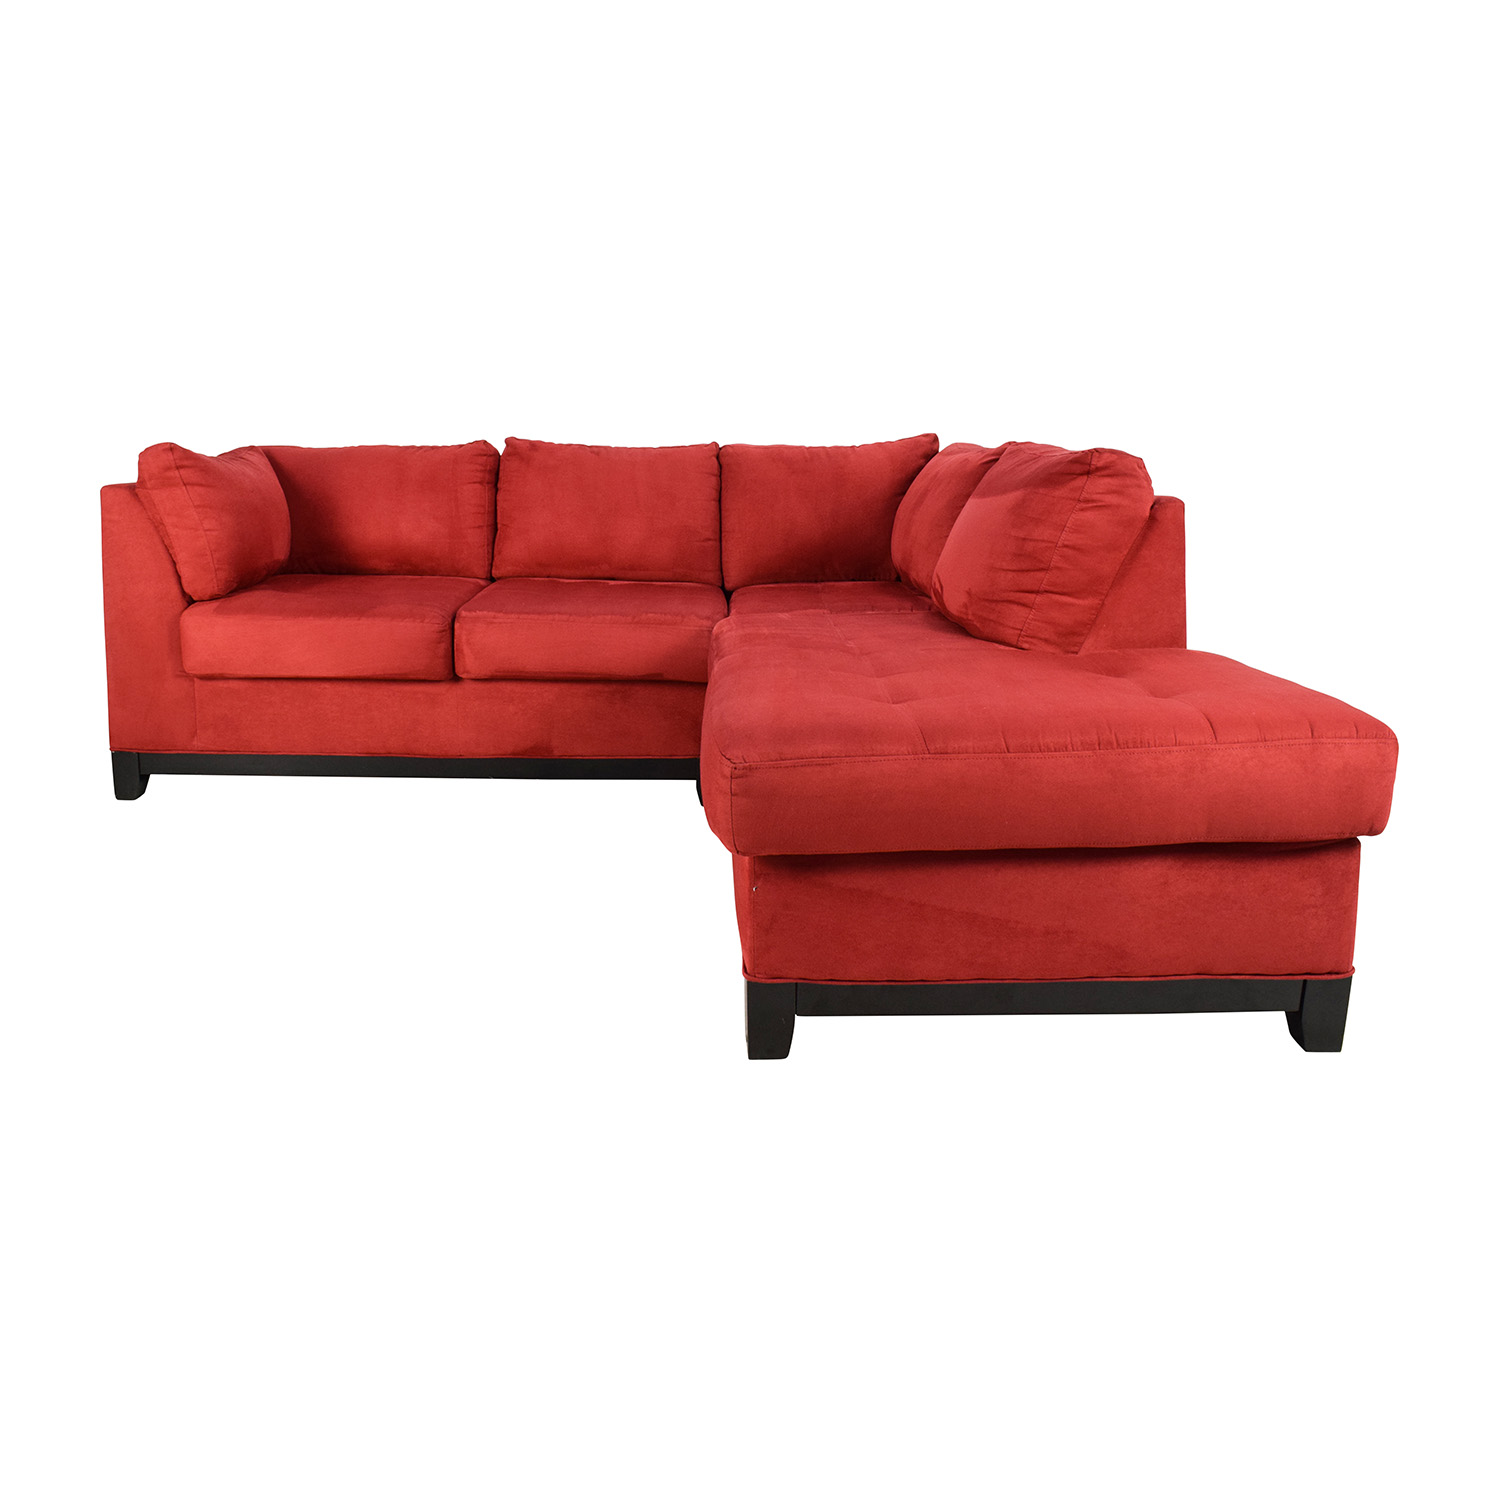 red sectional sofa everest charcoal microfiber audidatlevante